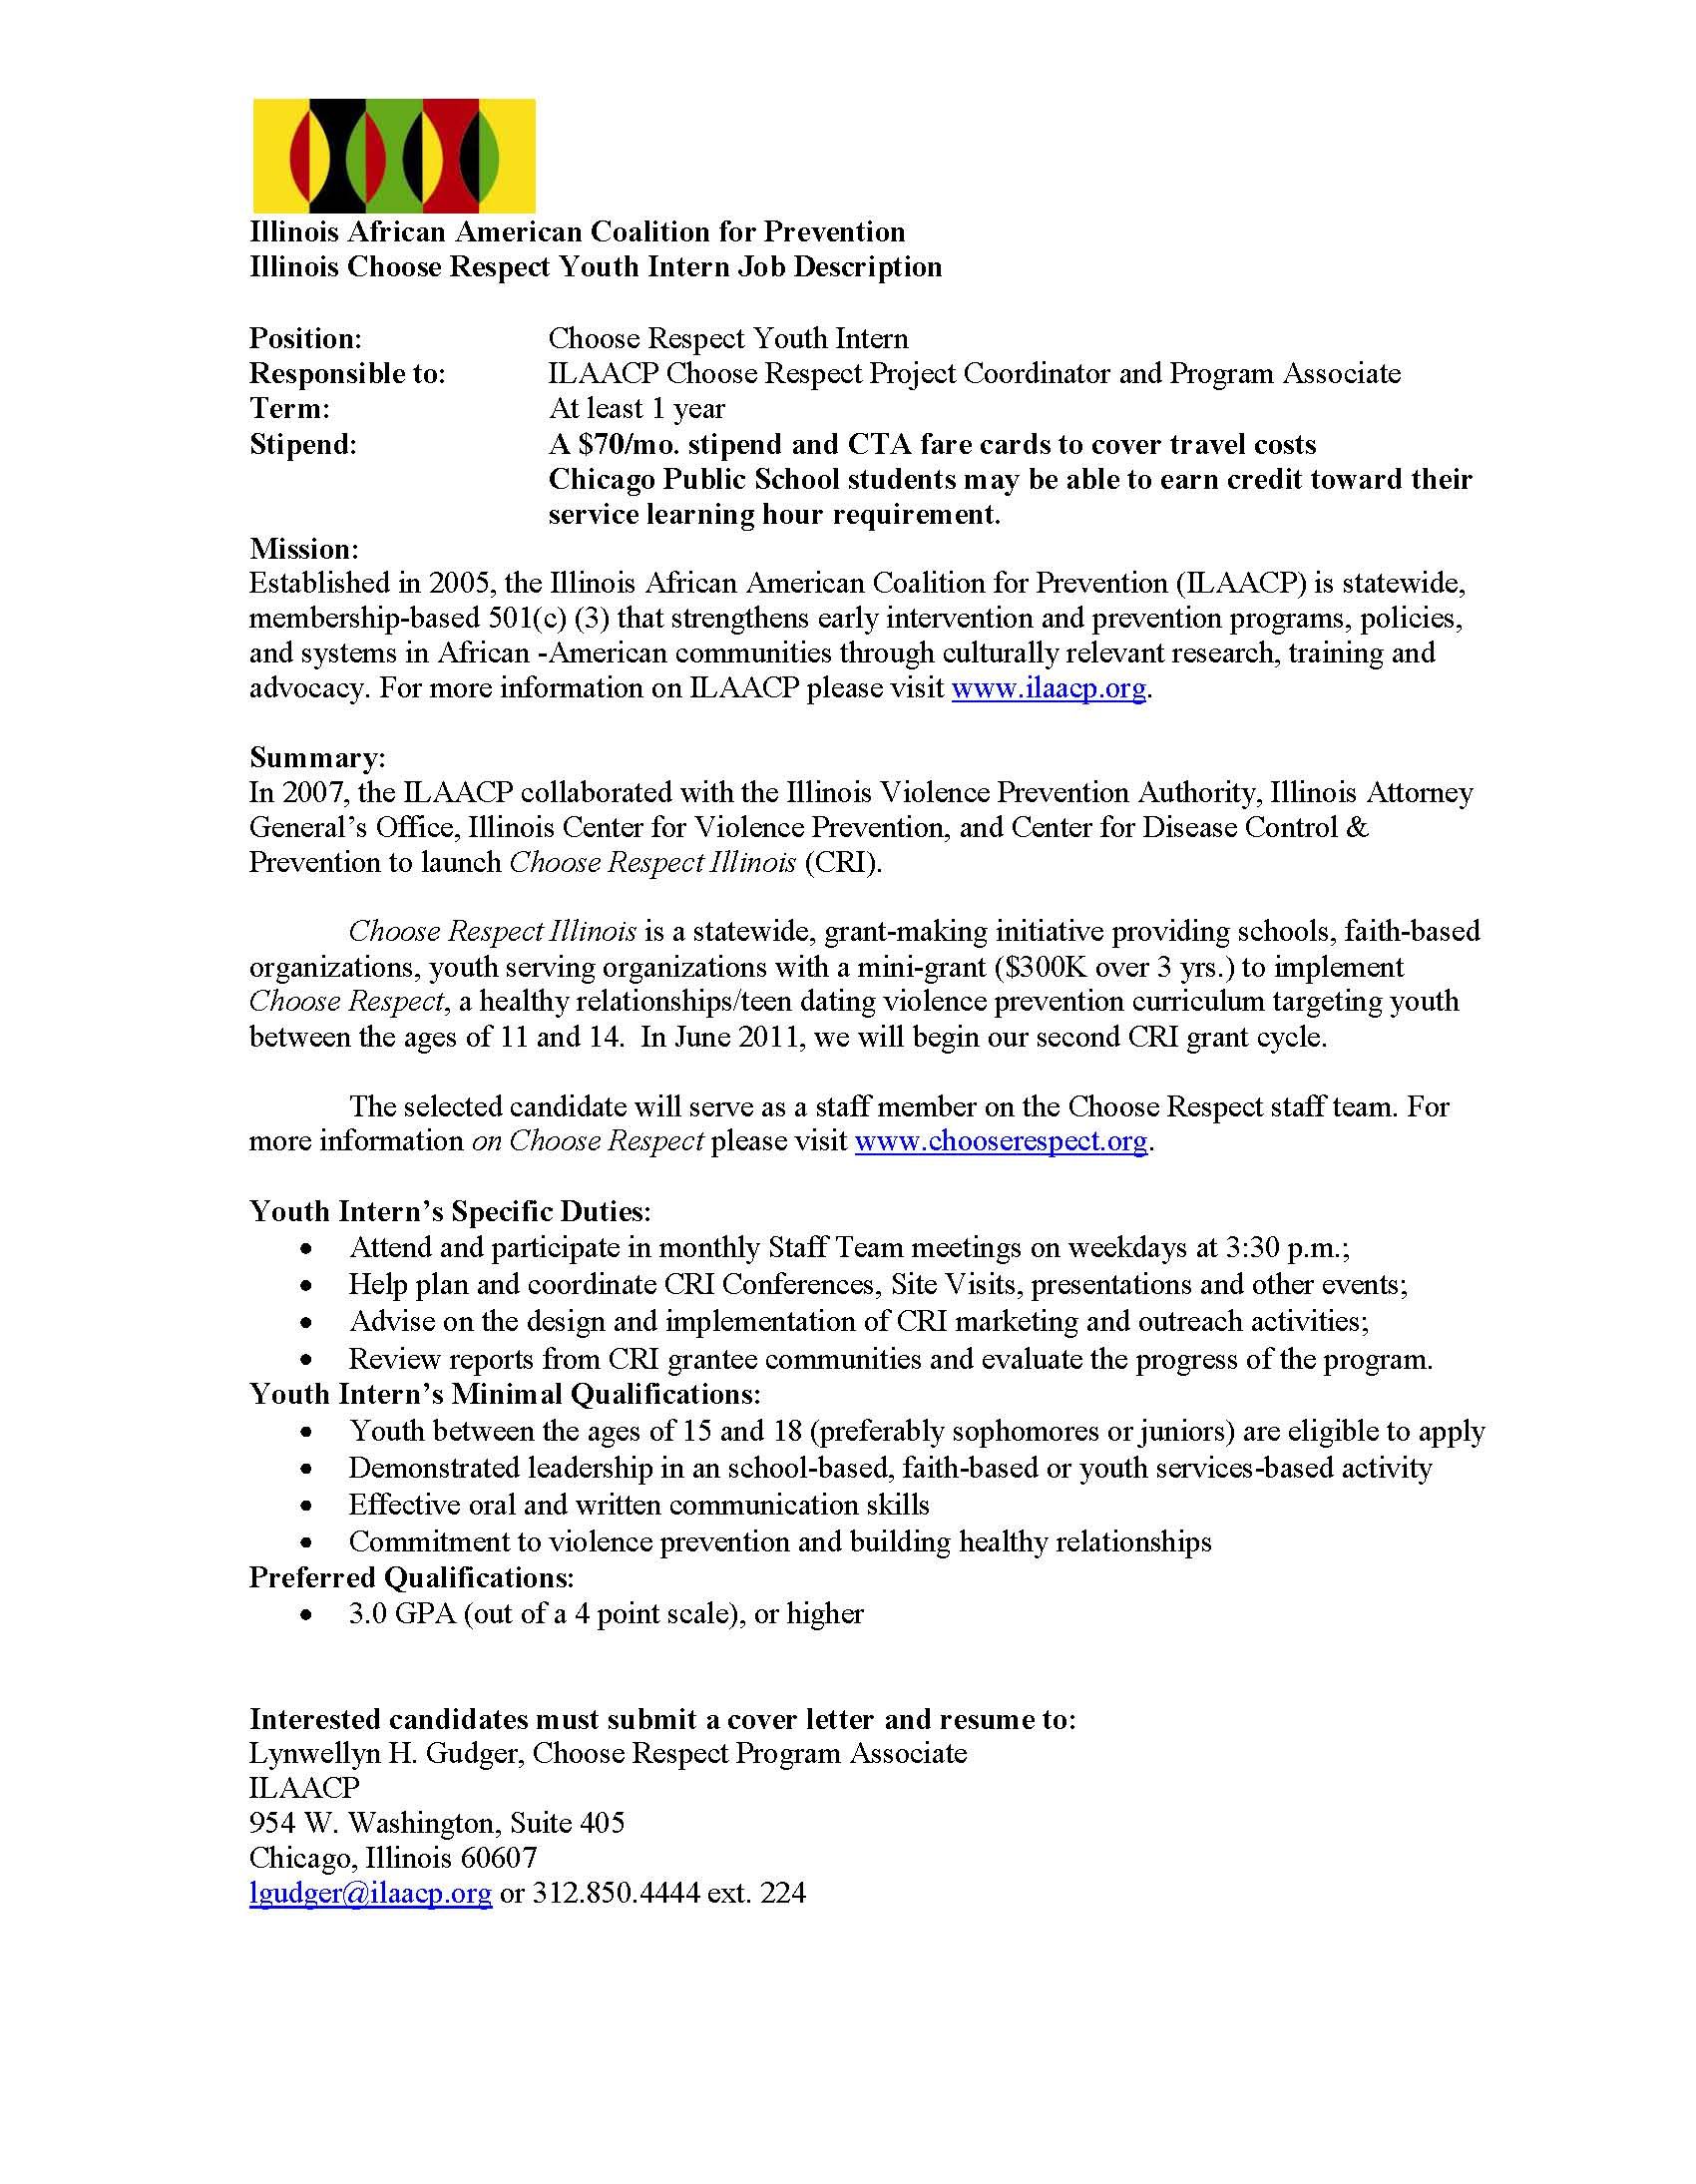 Illinois Choose Respect Youth Intern Job Description - Apply by ...